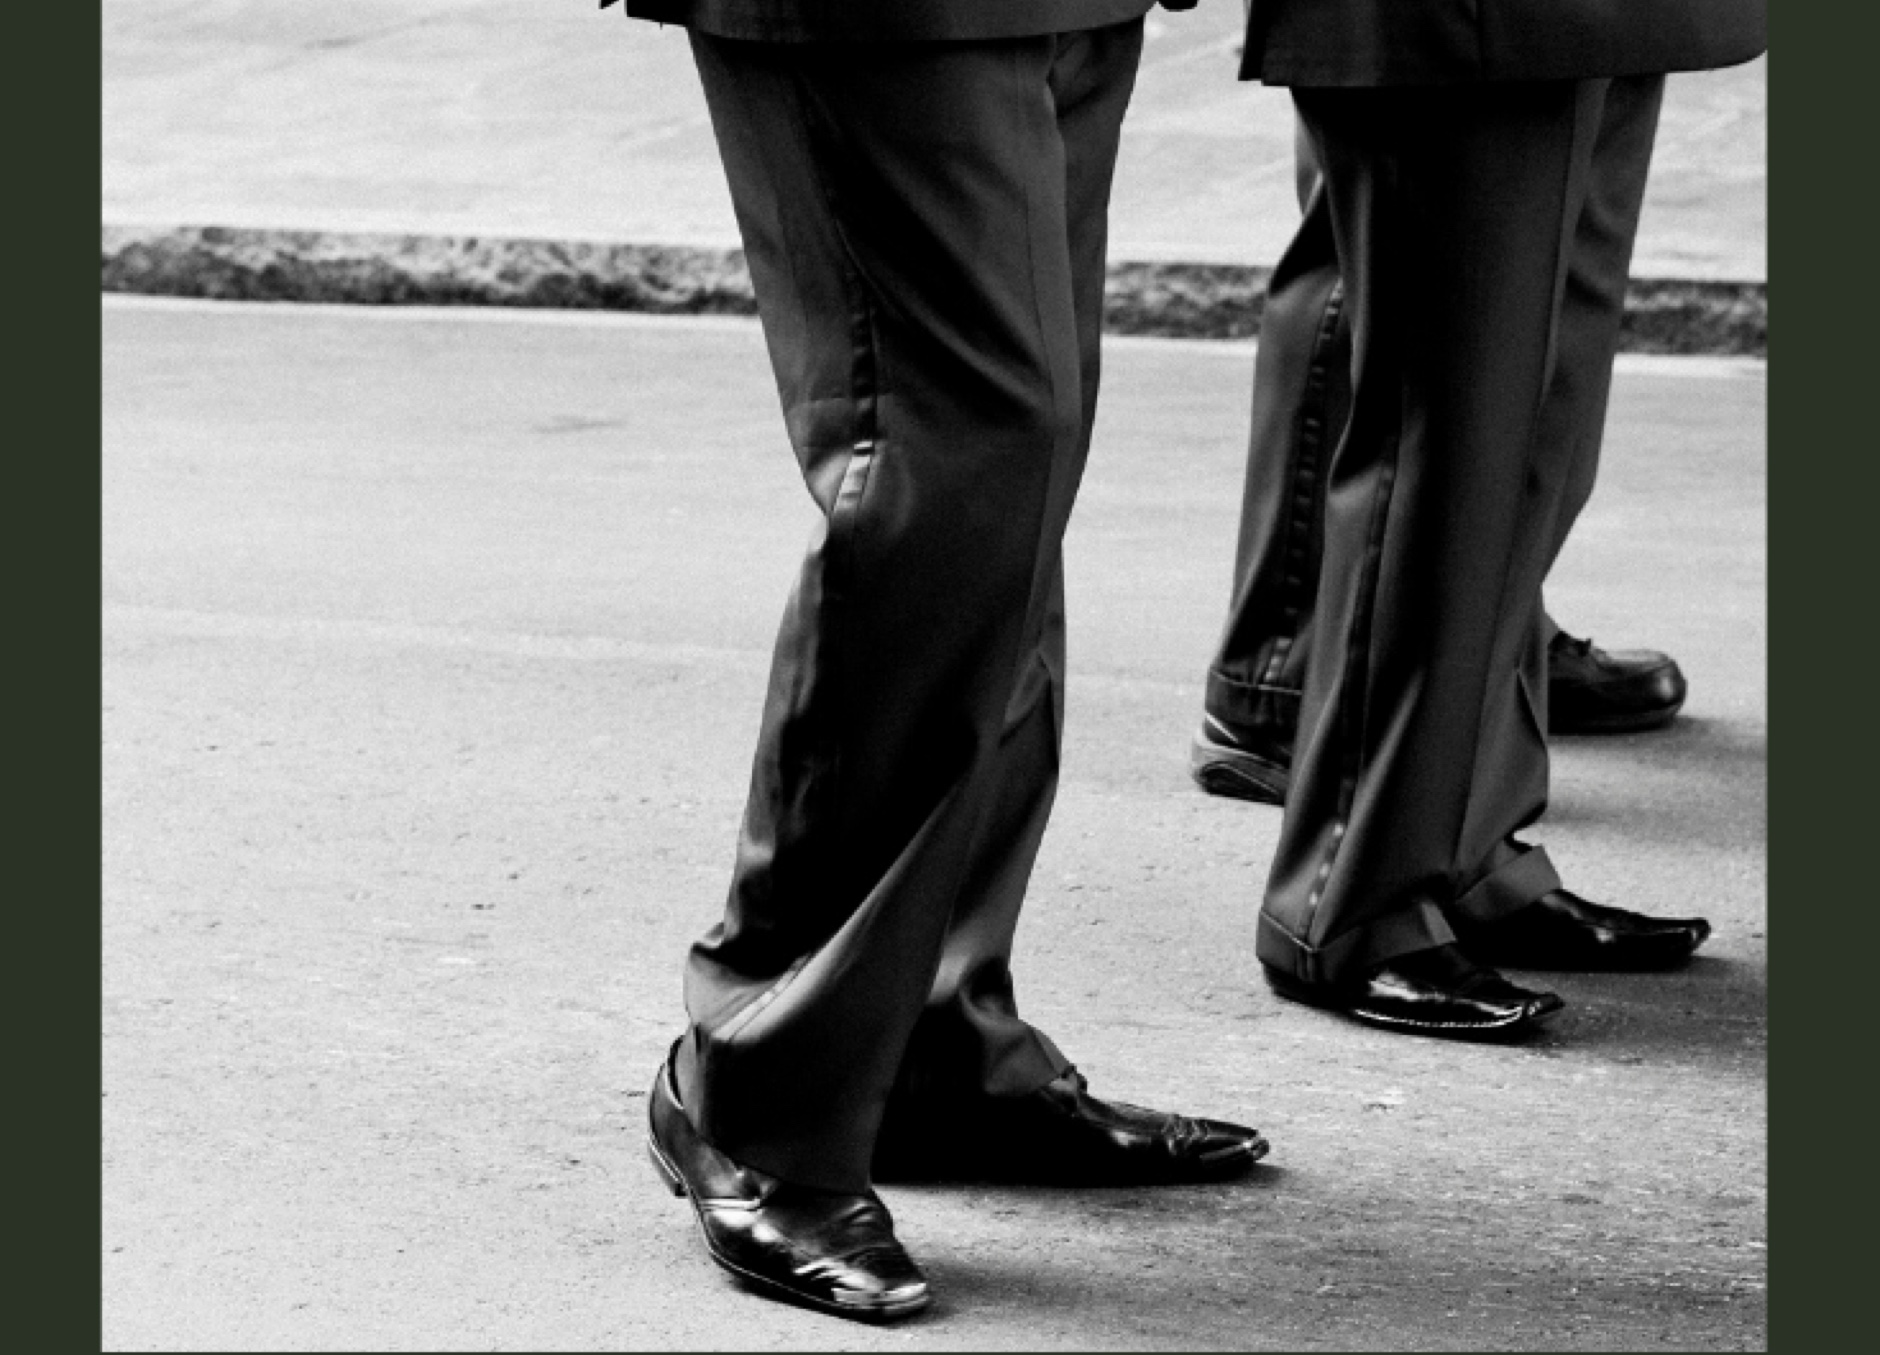 mens legs in trousers and black shoes